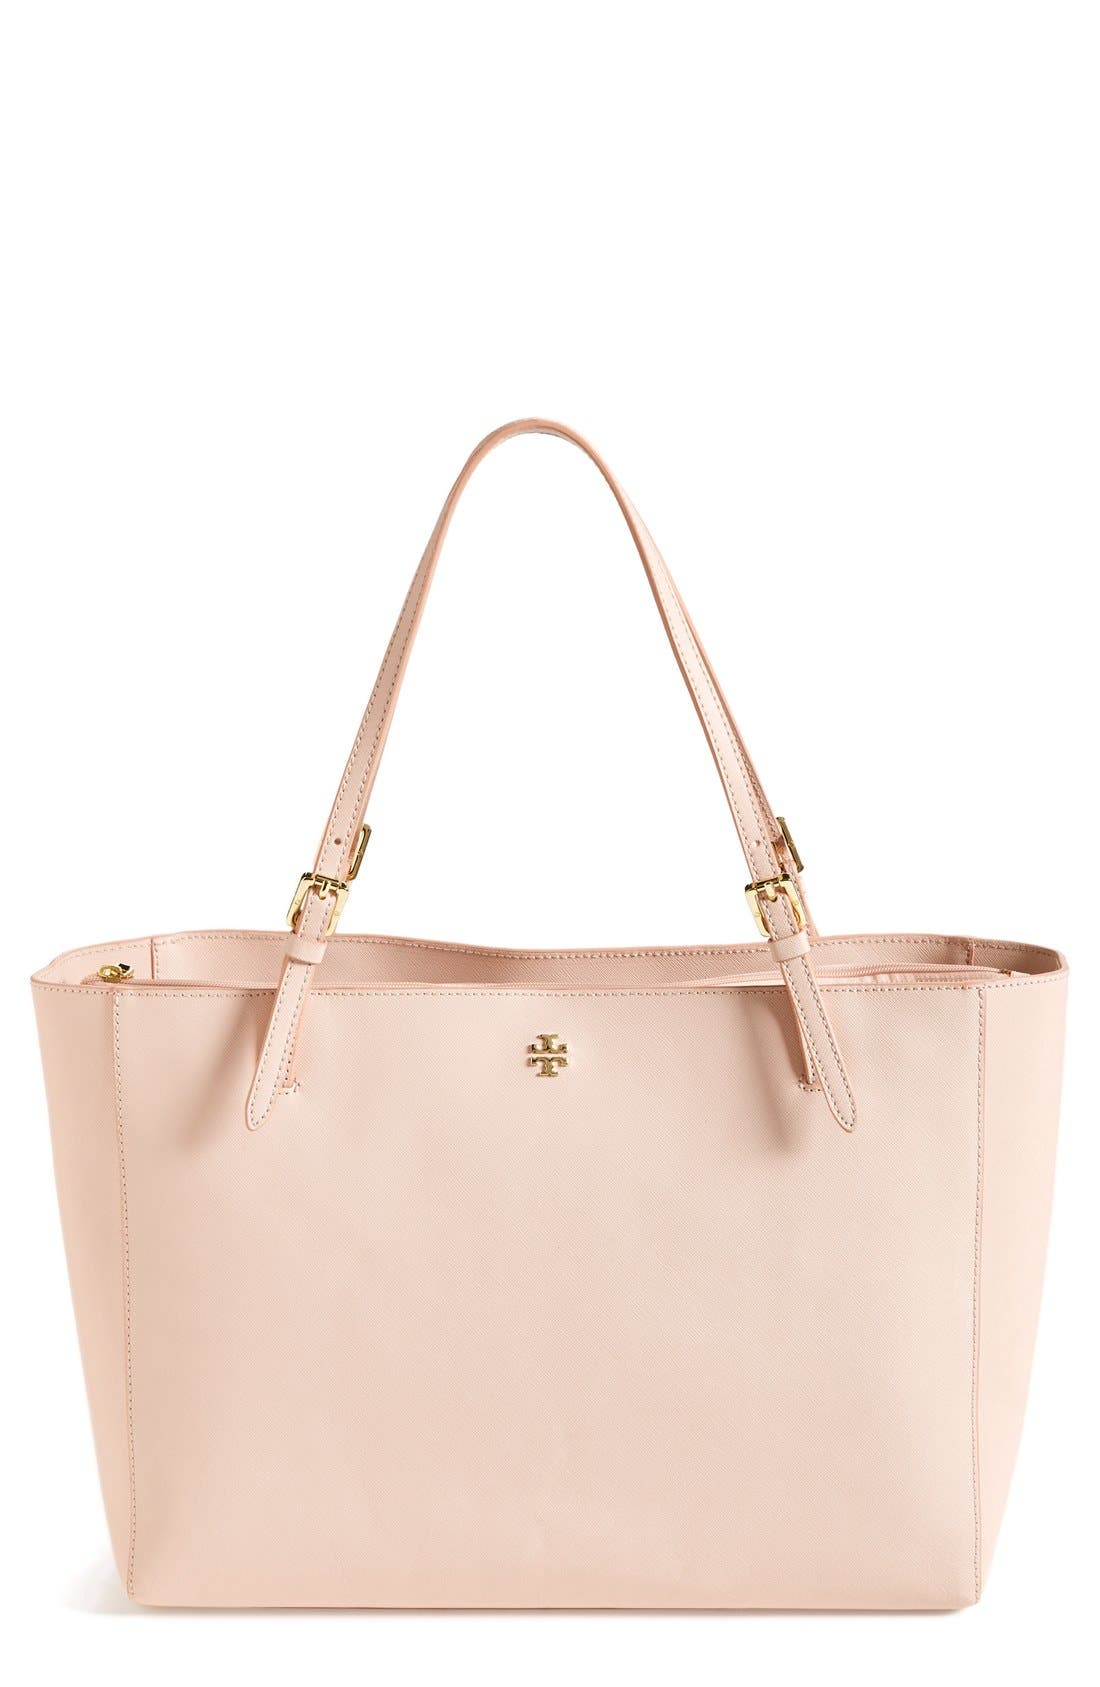 Tory Burch is an American lifestyle brand that embodies the personal style and sensibility of its Chairman, CEO and Designer, Tory Burch. Launched in February , the collection, known for color, print and eclectic details, includes ready-to-wear, shoes, handbags, accessories, watches, home .